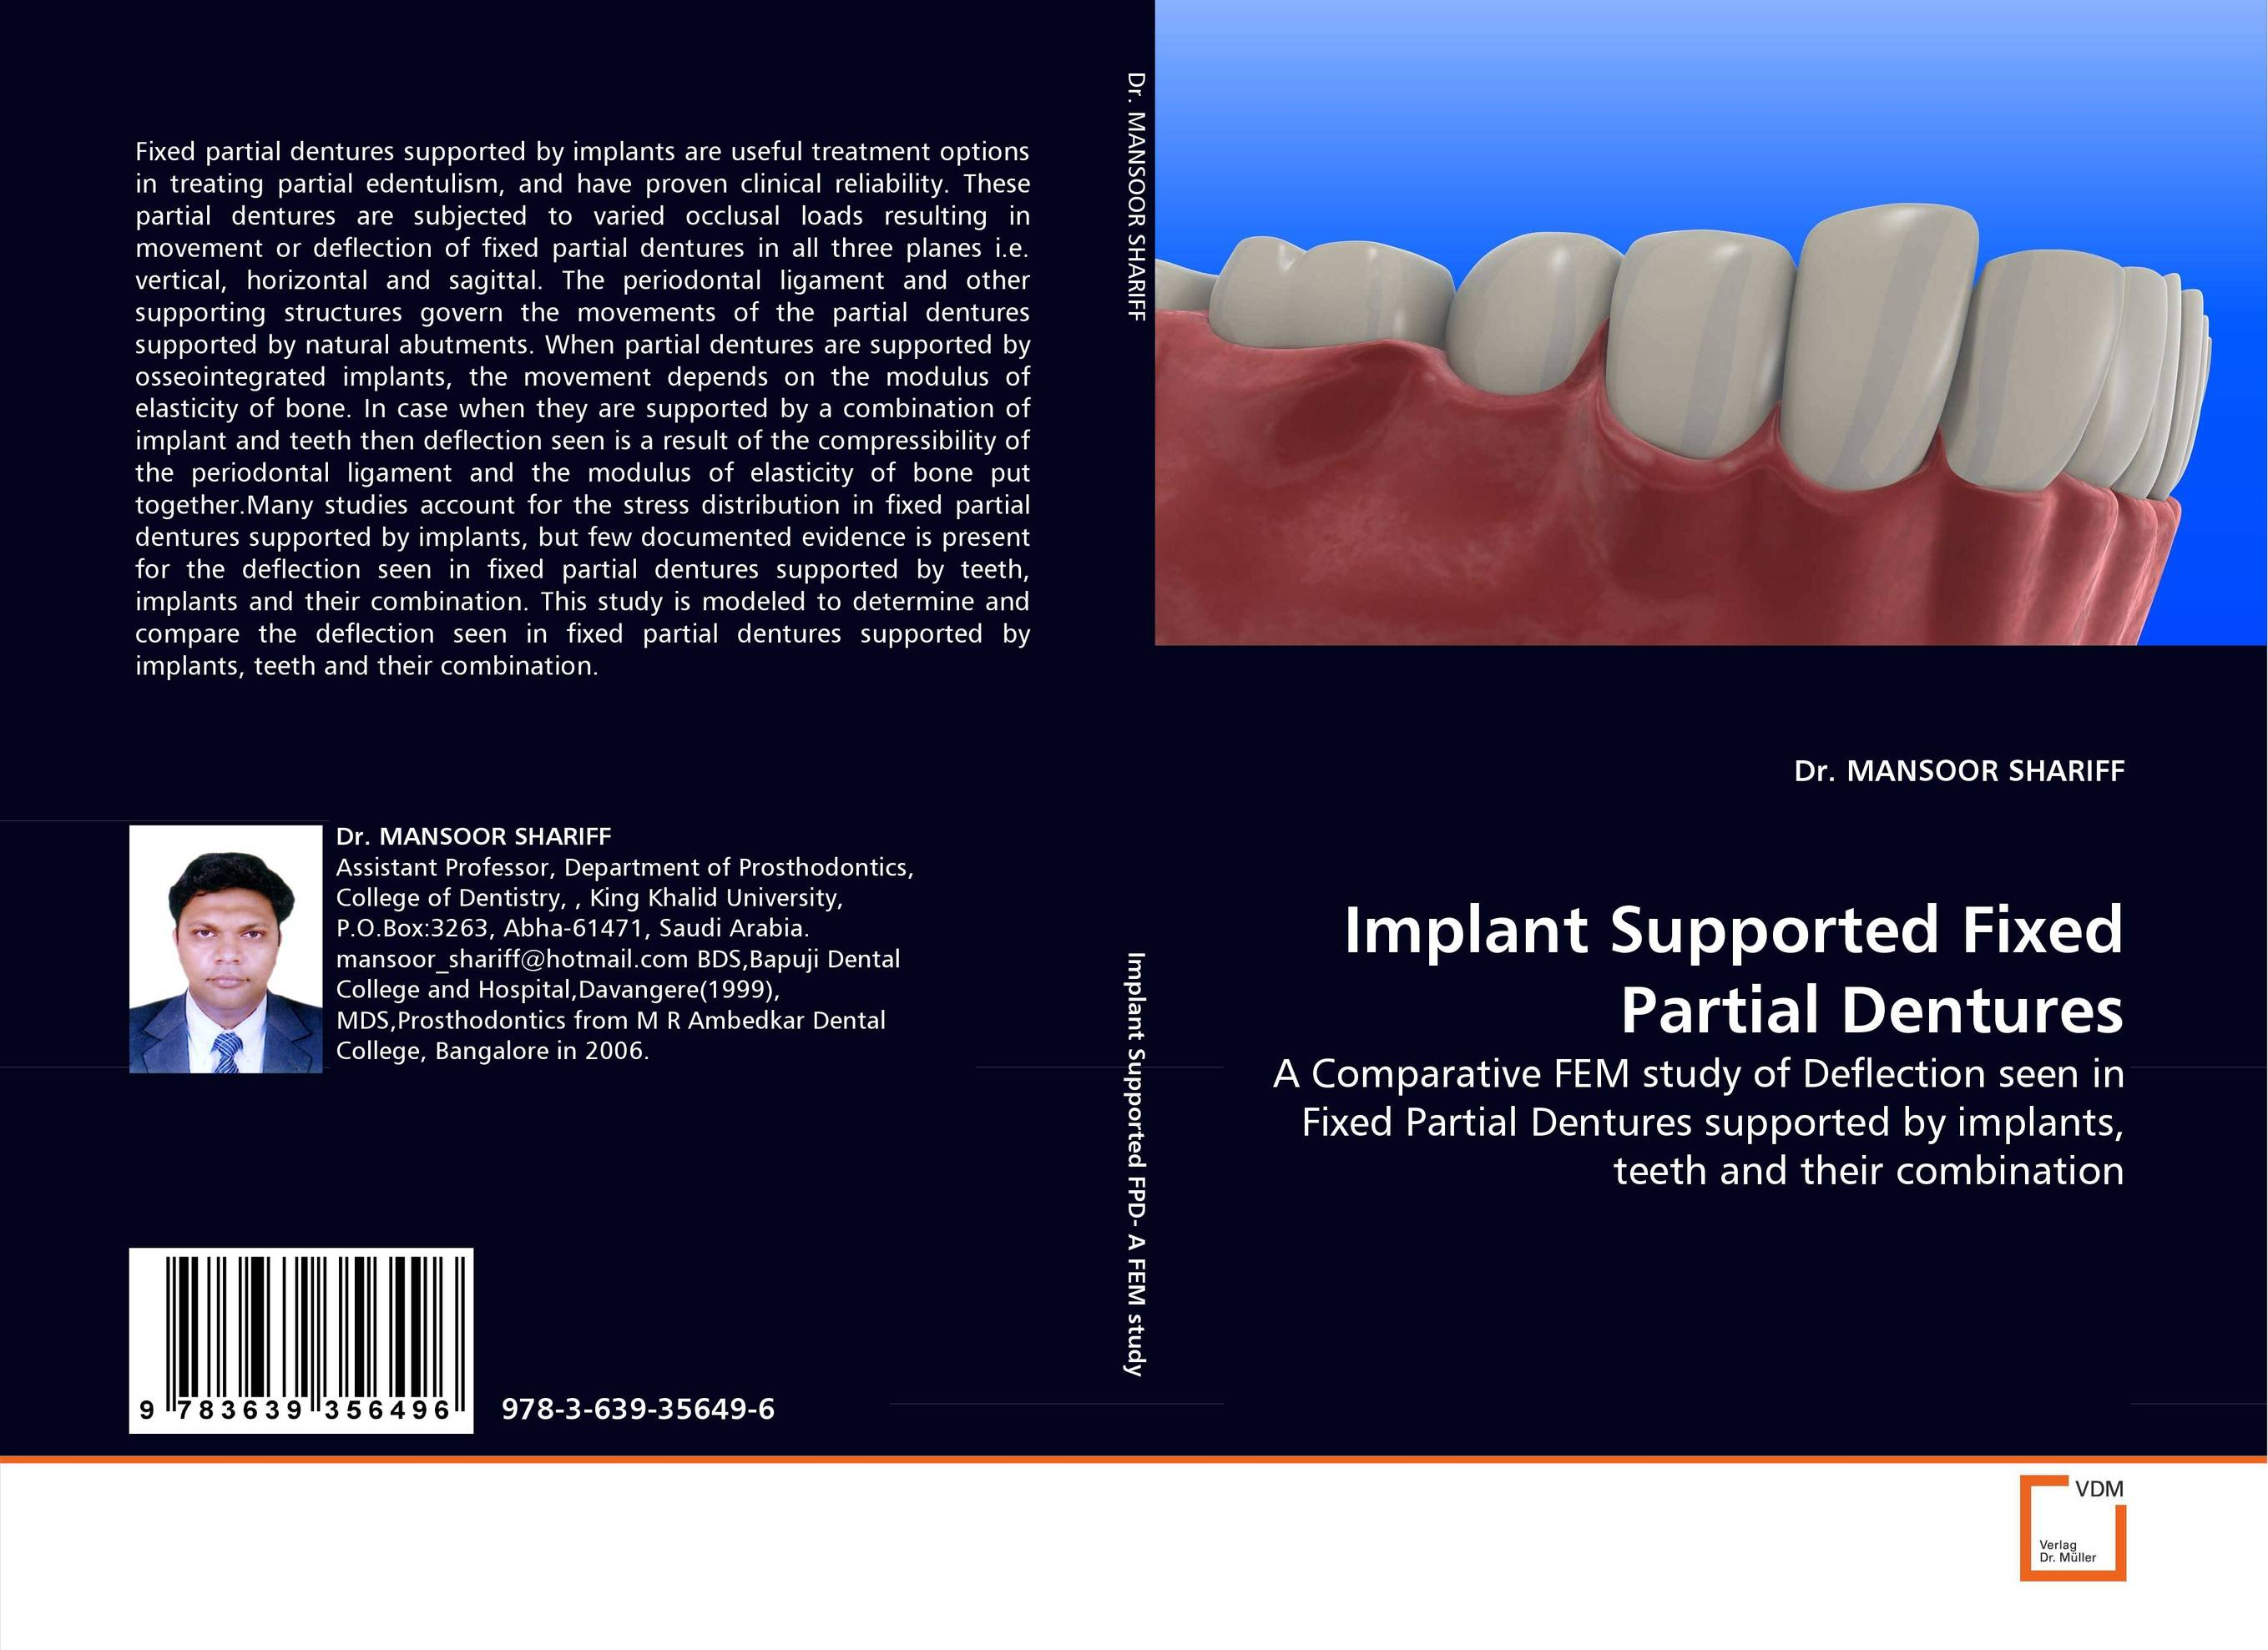 Implant Supported Fixed Partial Dentures